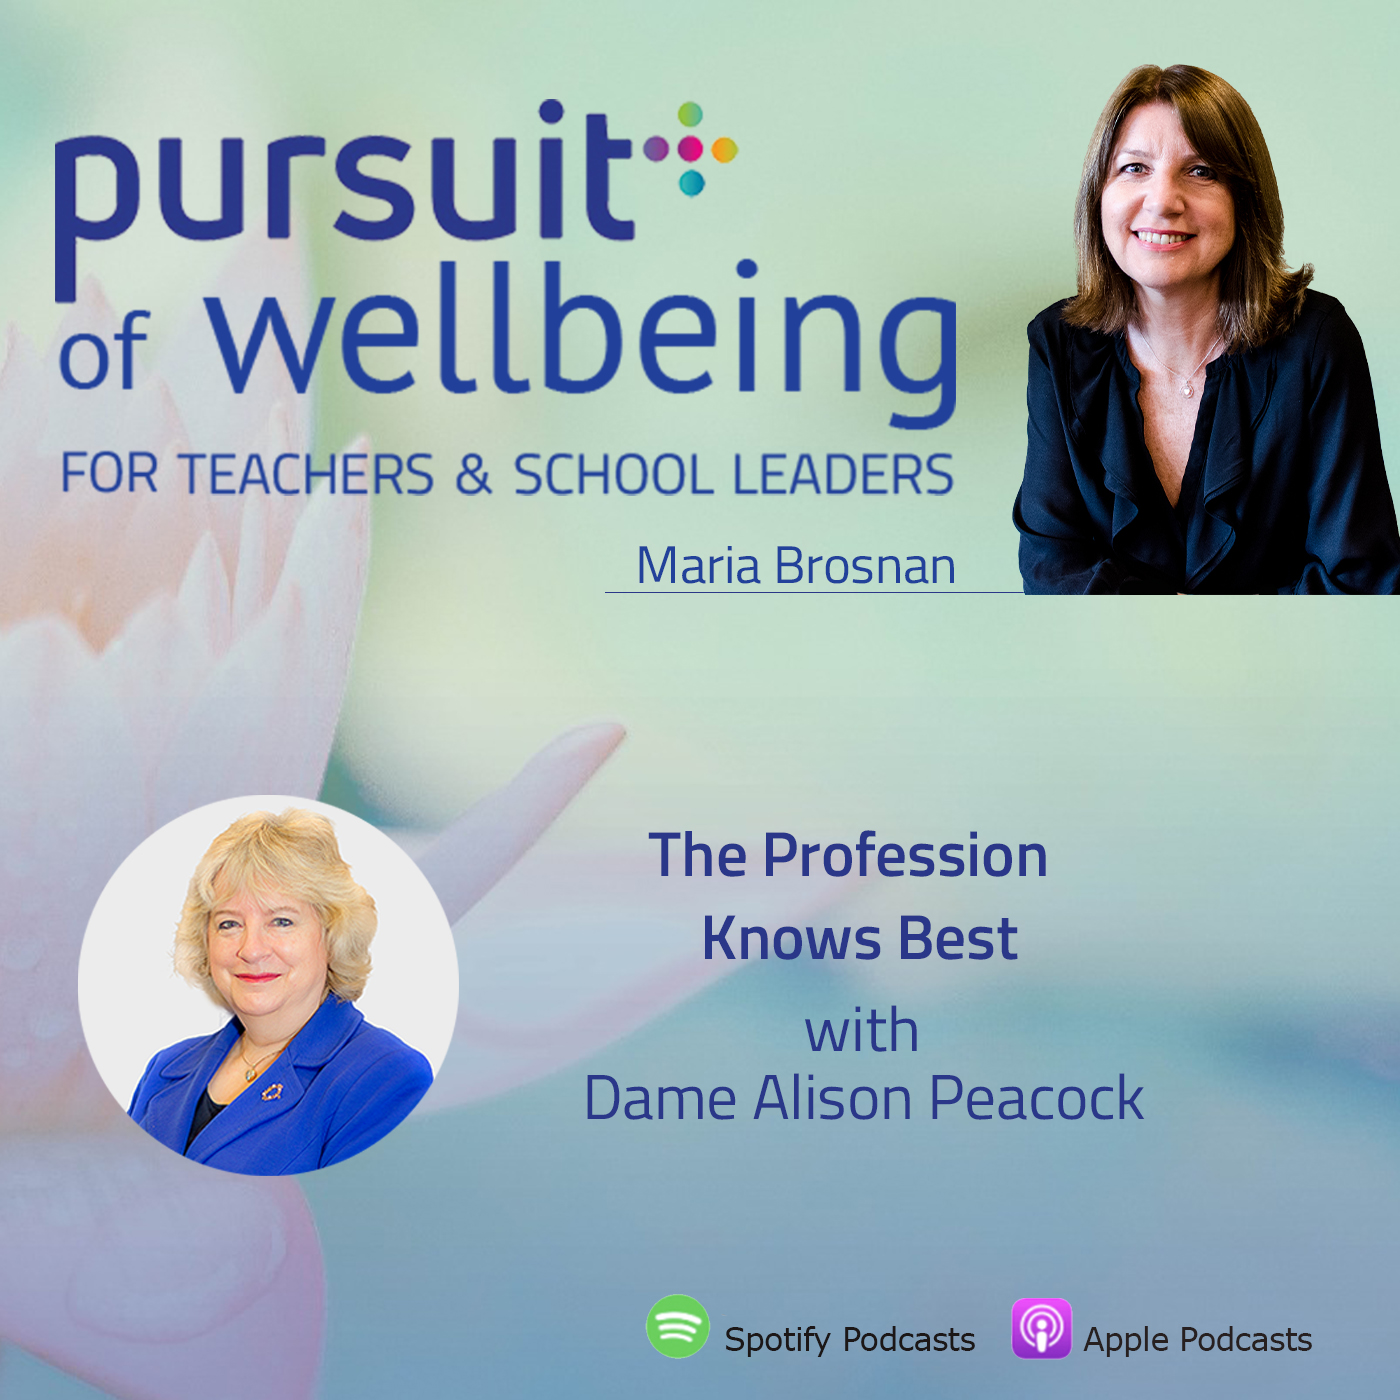 The Profession Knows Best with Dame Alison Peacock